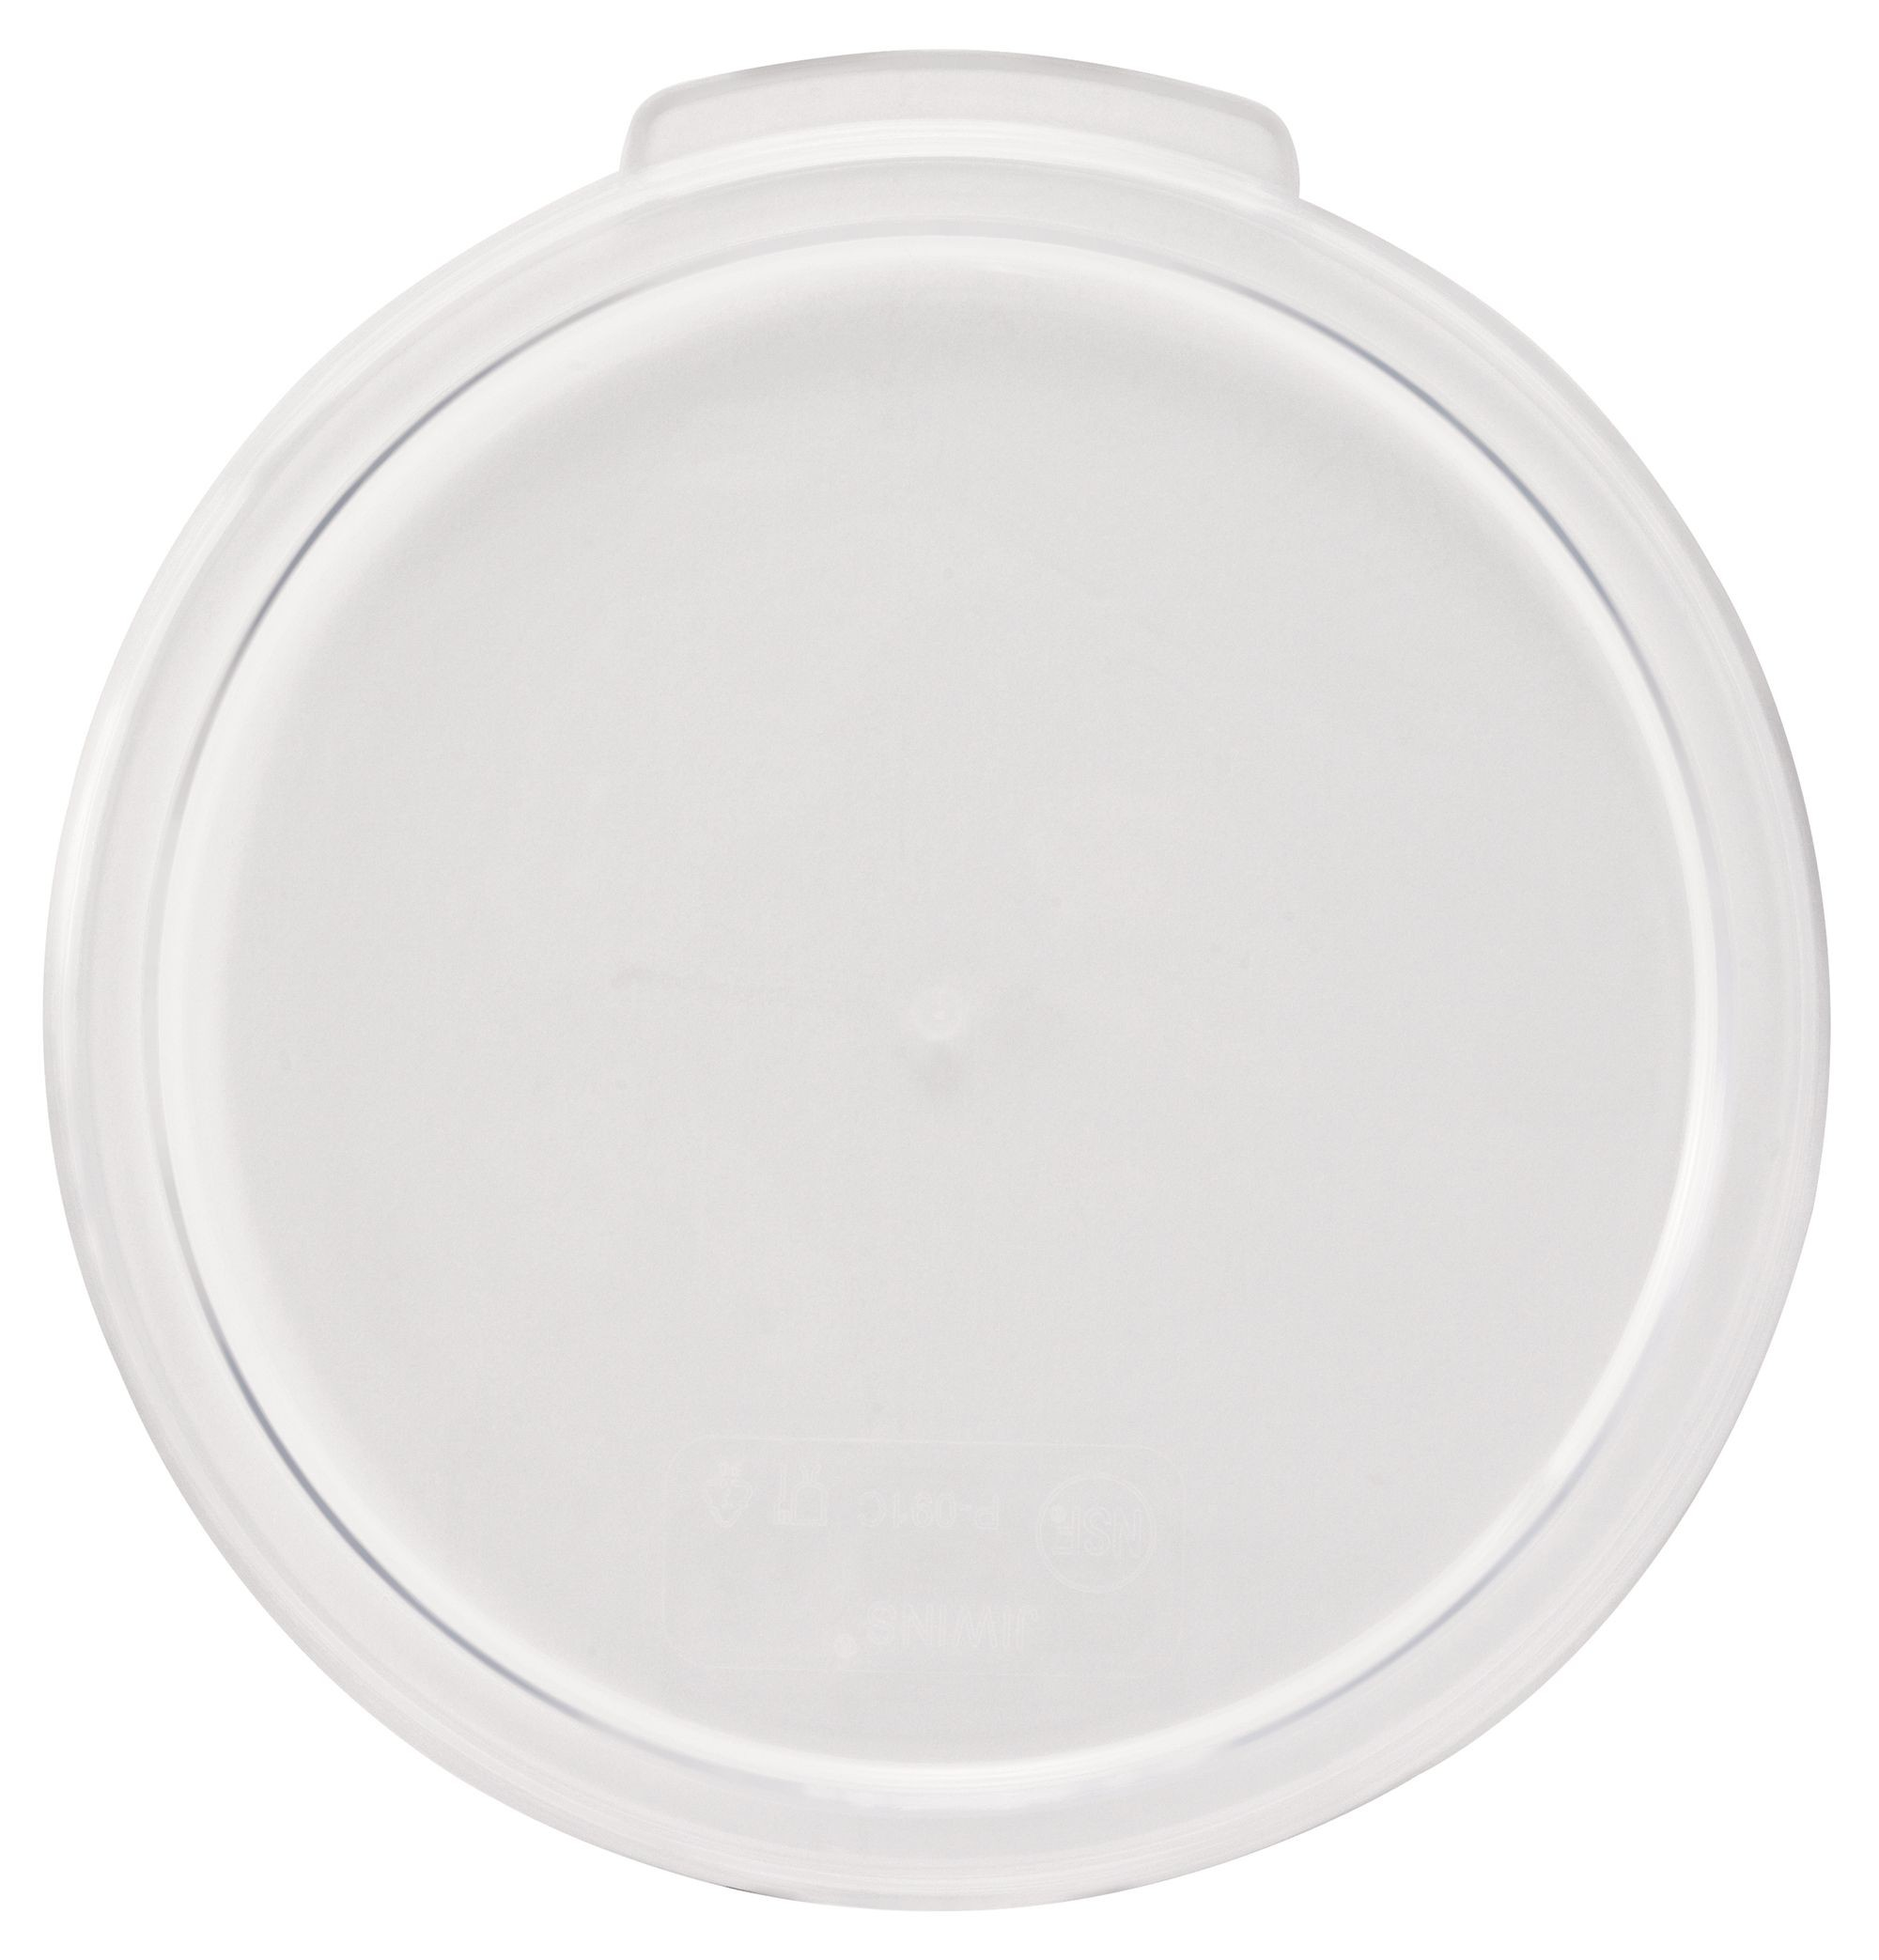 PC Round Cover, Fits 1Qt